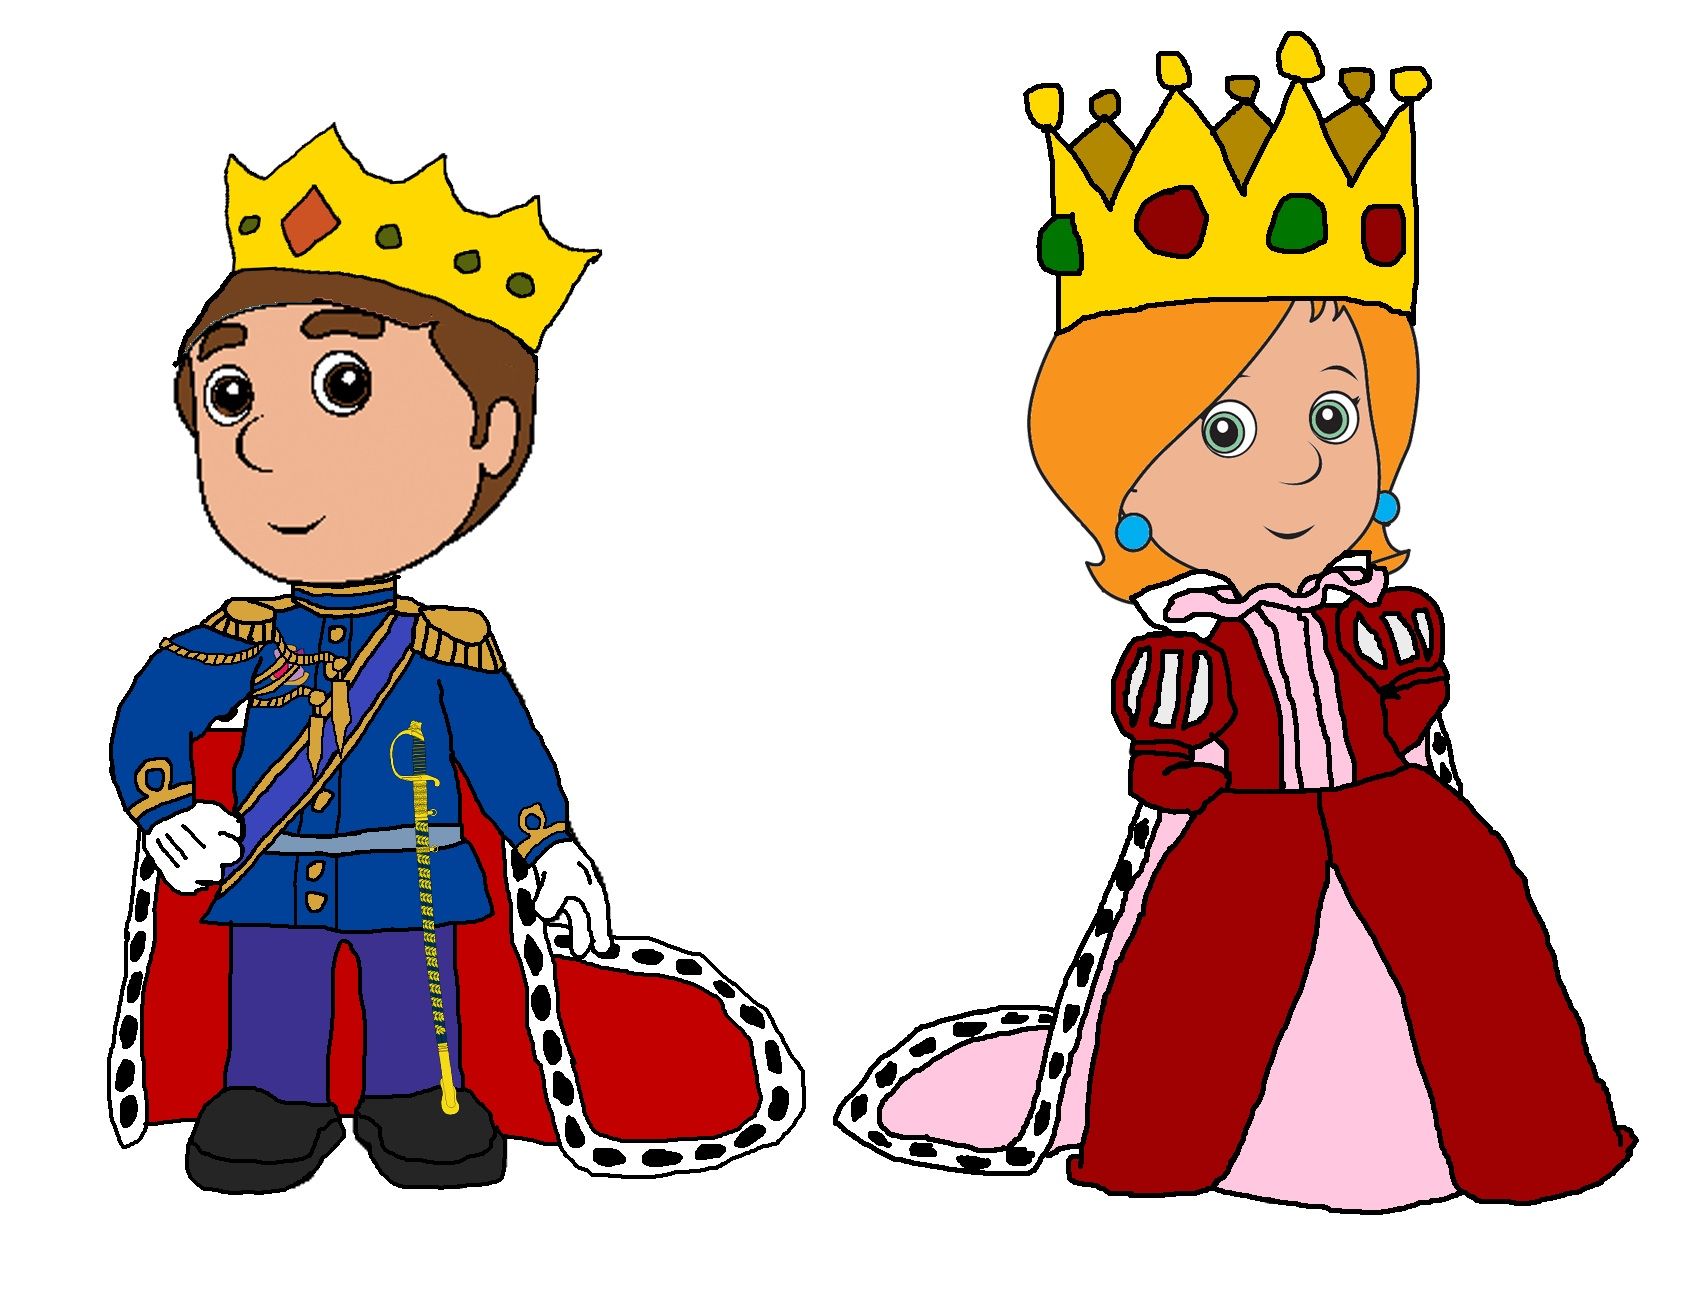 King and queen of hearts clipart image freeuse Medieval king and queen clipart - ClipartFest image freeuse